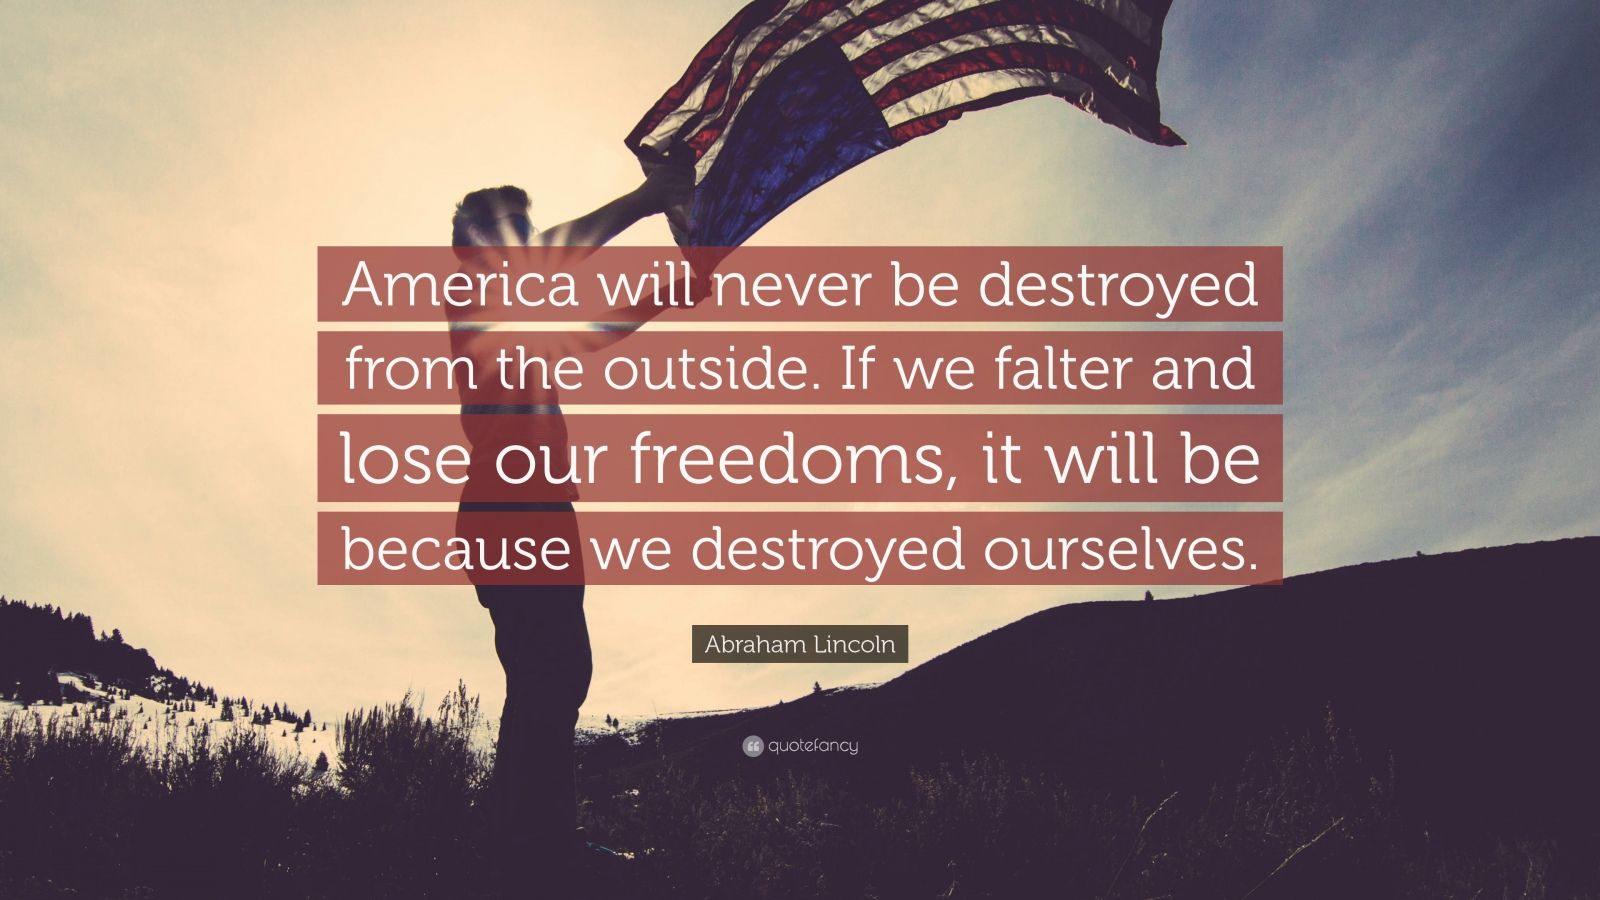 """Abraham Lincoln Quote: """"America will never be destroyed from the outside.  If we falter and lose our freedoms, it will be because we destroyed ourselves."""""""